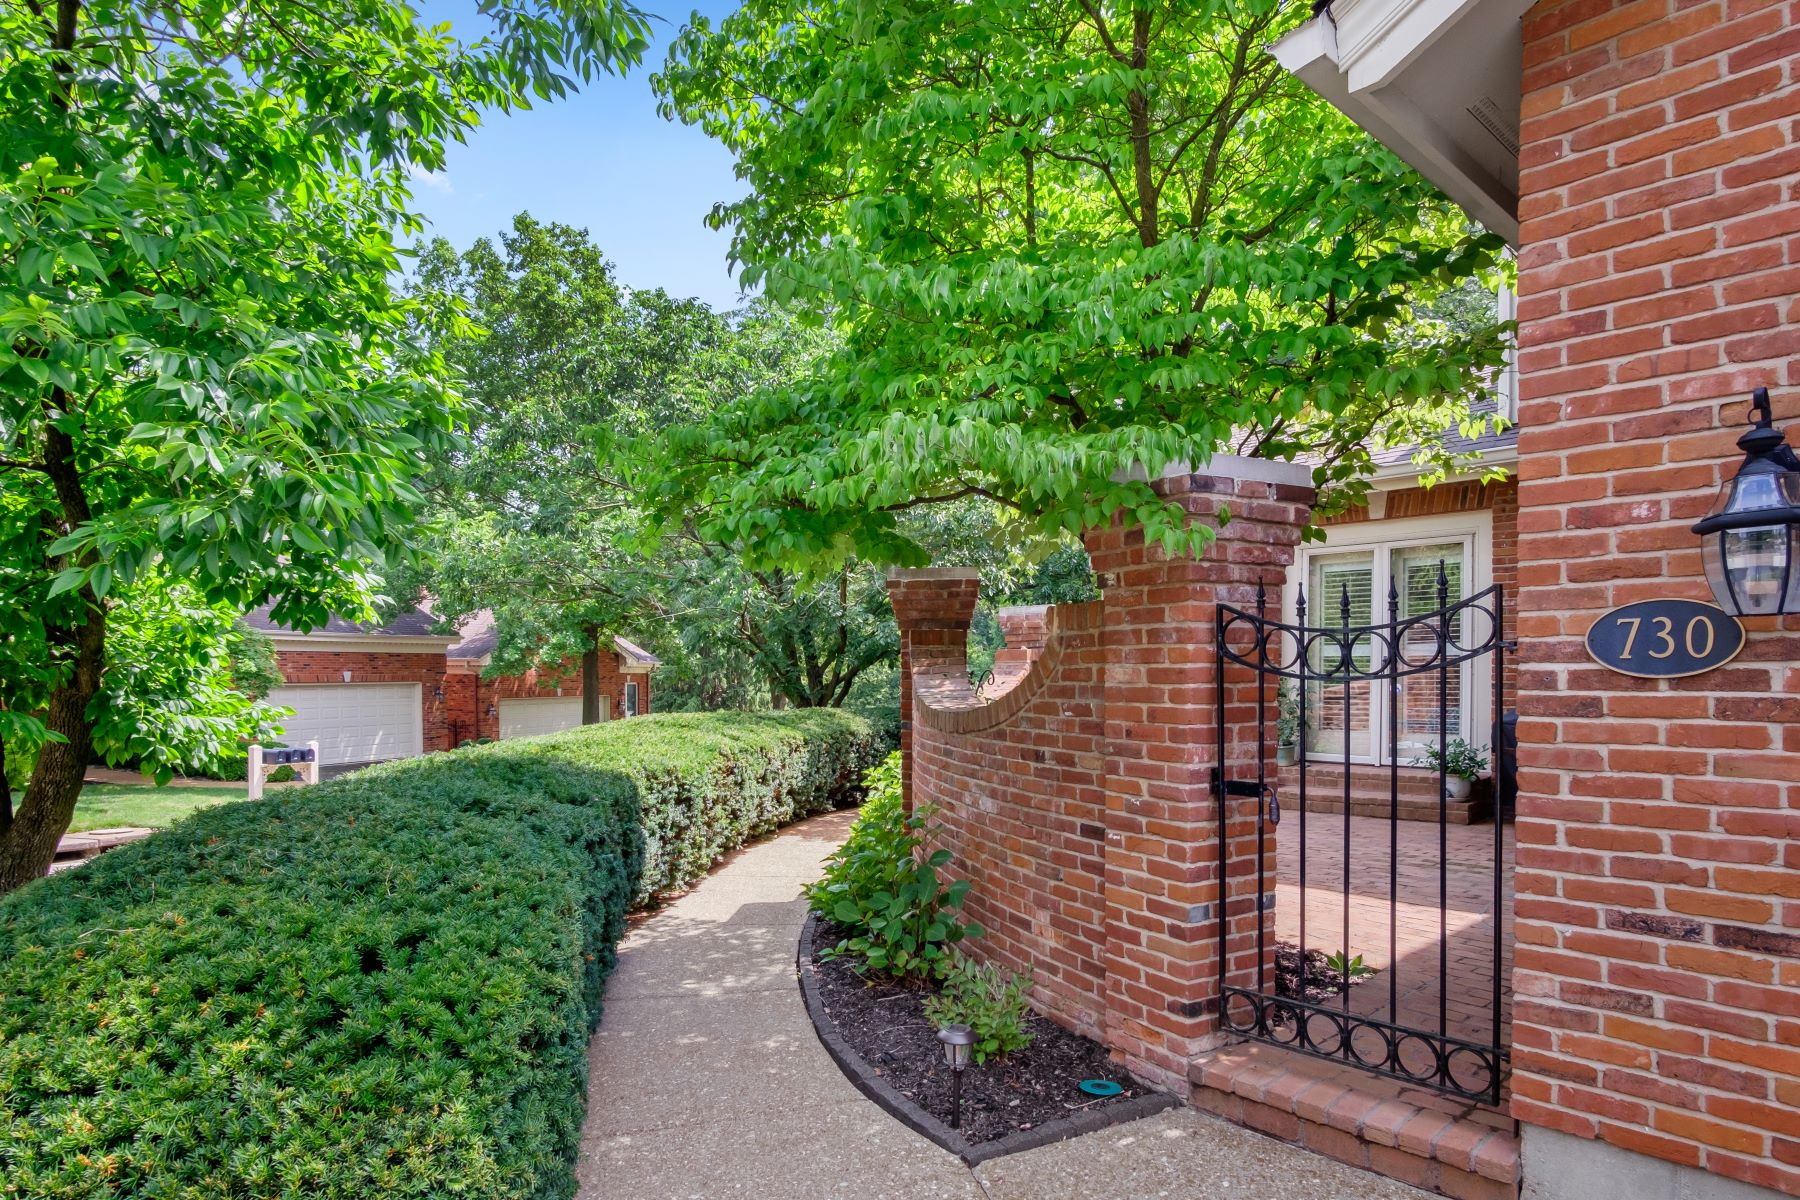 Additional photo for property listing at Spacious Condo On A Serene Lake in Town & Country 730 Fairfield Lake Drive #1 Chesterfield, Missouri 63017 United States